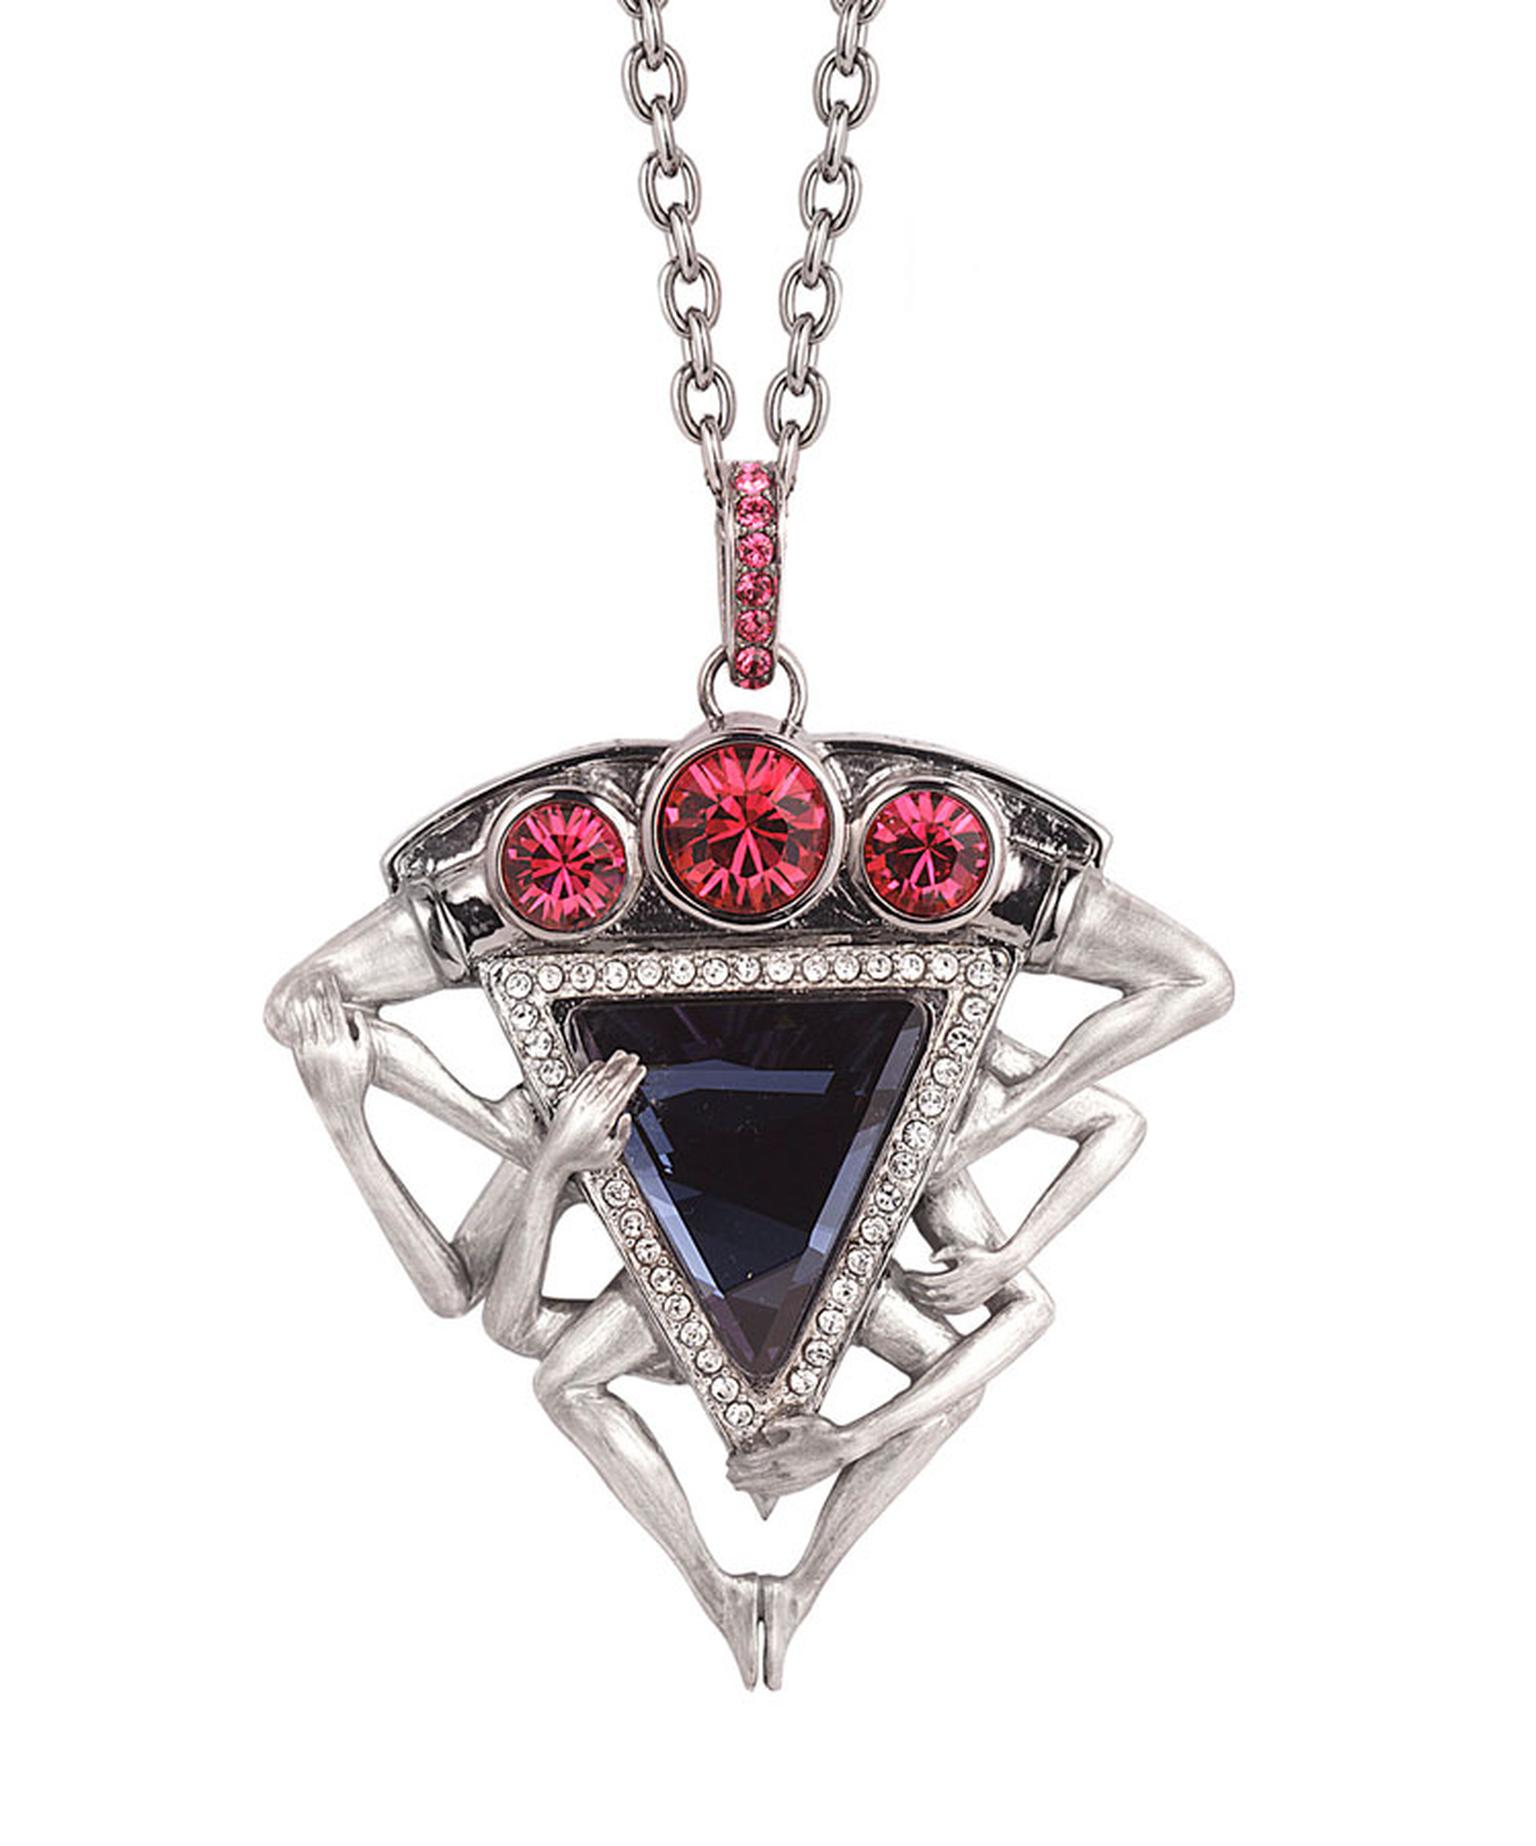 Stephen Webster Seven Deadly Sins Lust Pendant set in sterling silver with pave crystals 650